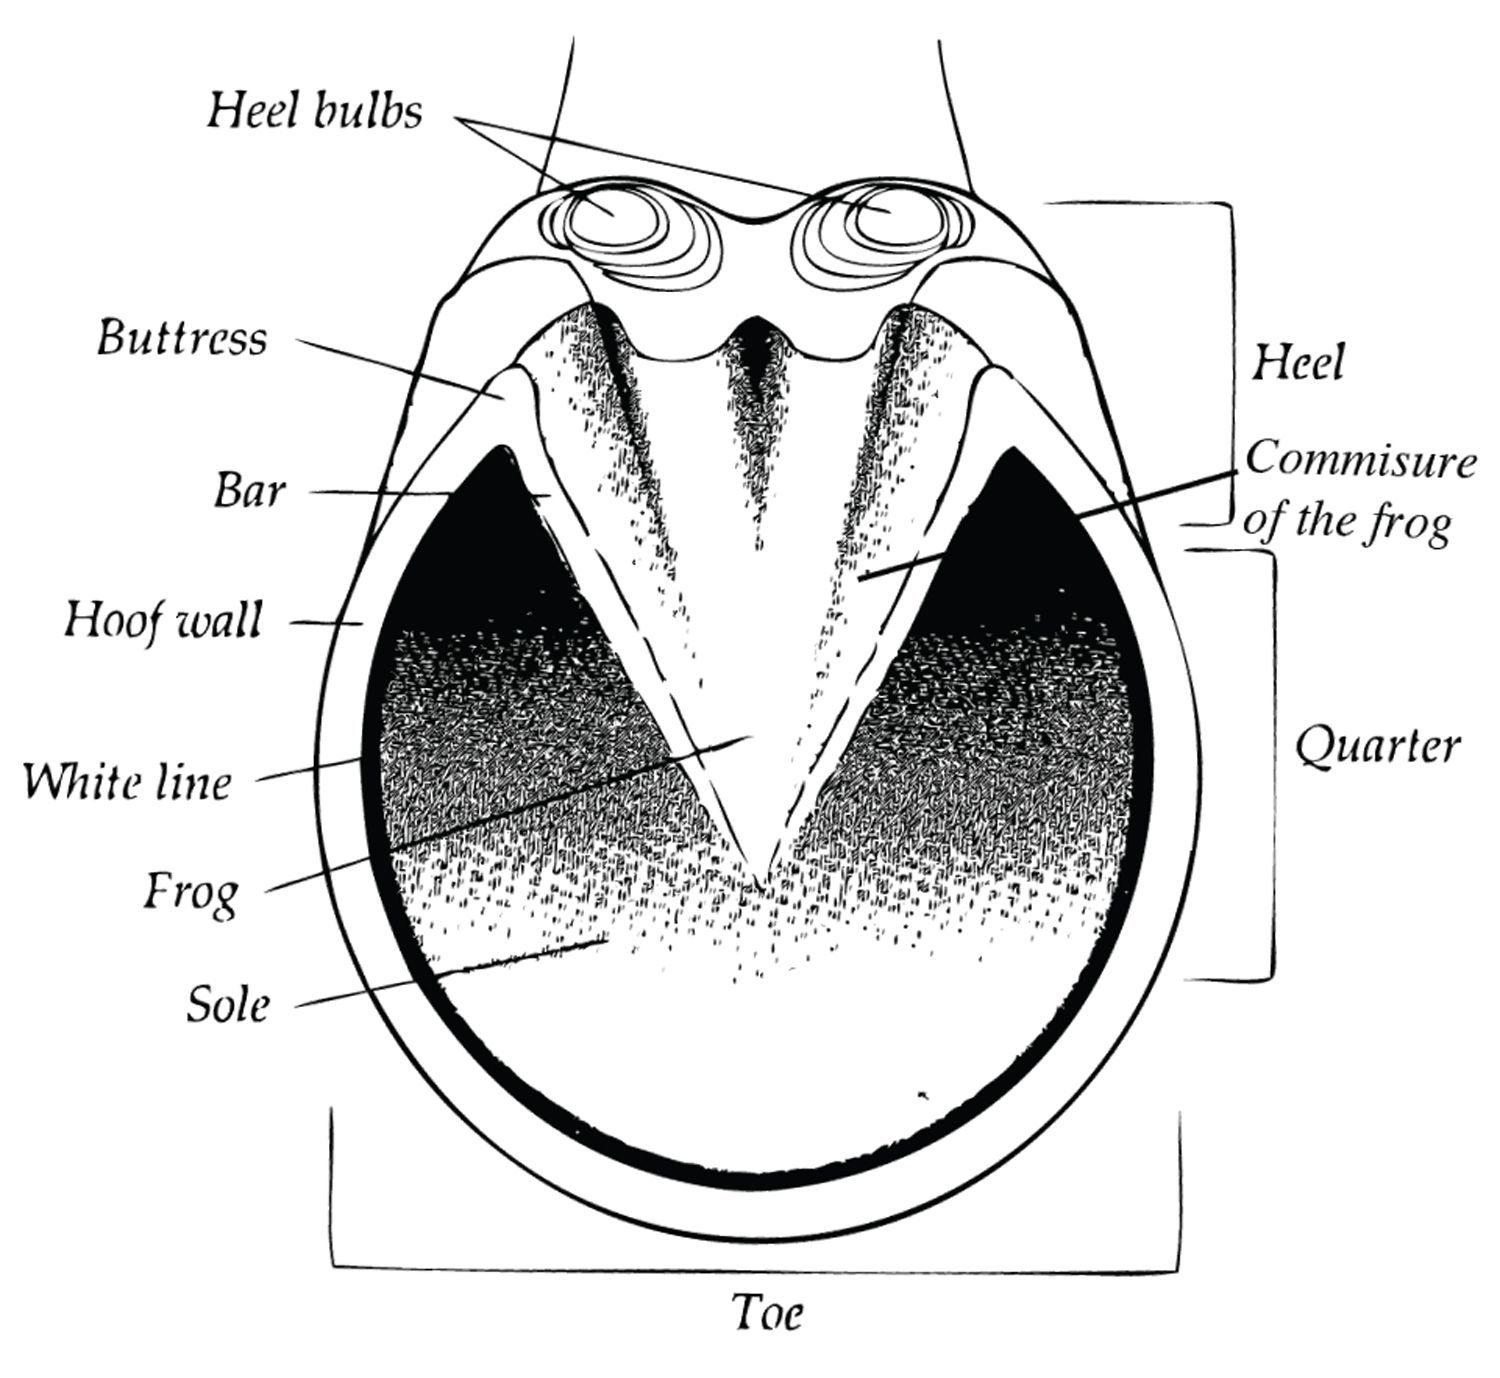 hight resolution of diagram of the parts of the equine hoof showing heel bulbs diagram of horse hoof heel bulb